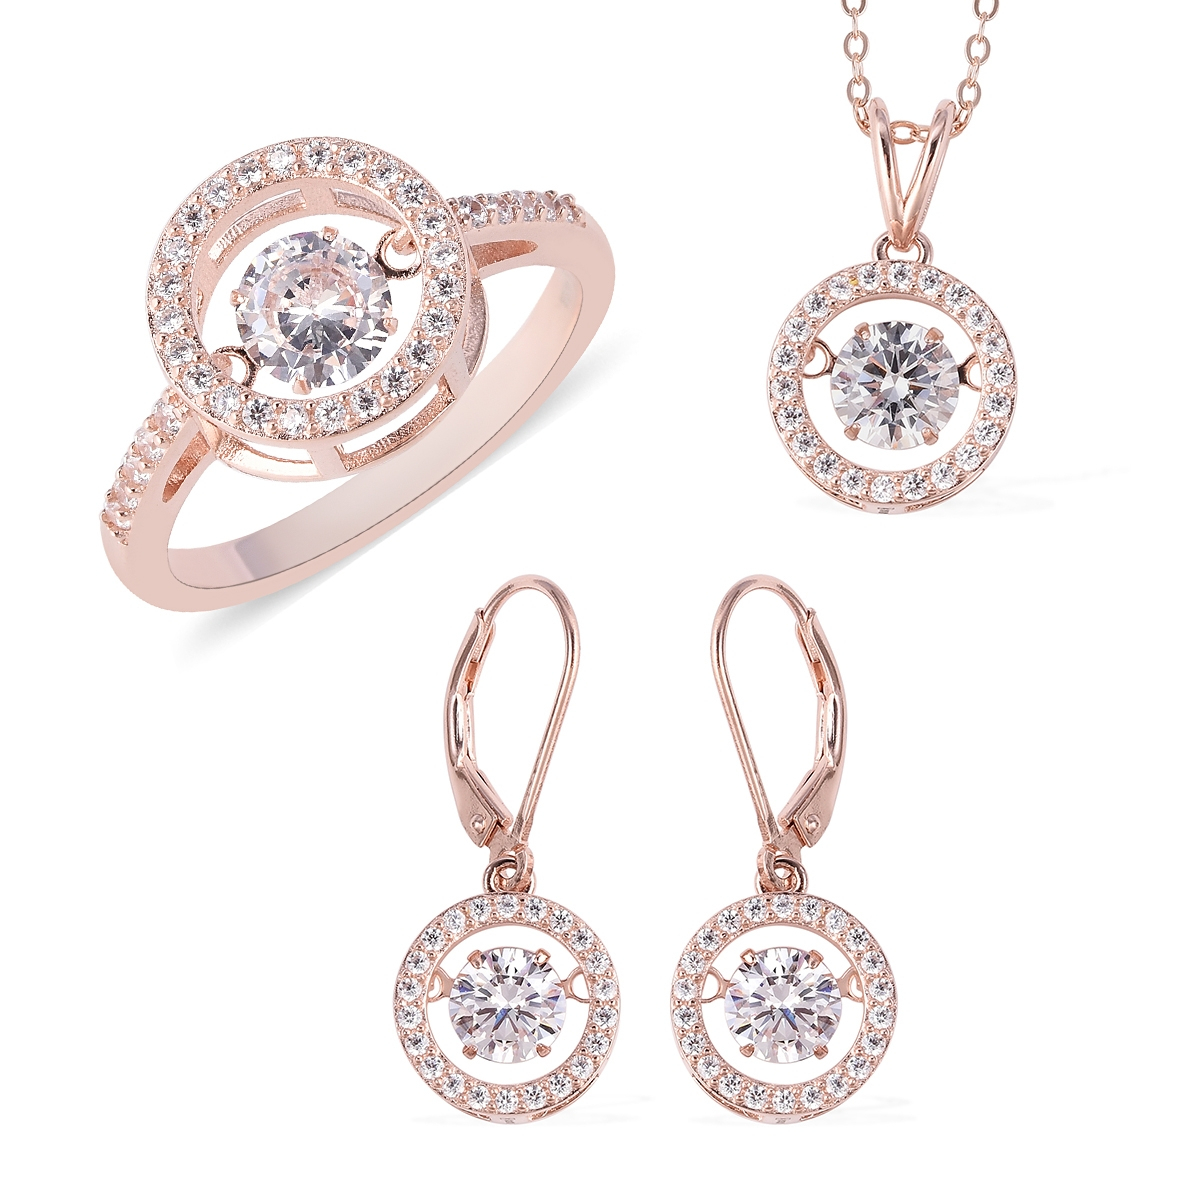 Lustro Stella Dancing Cz Halo Set Earrings, Ring (Size 10) And Pendant Necklace (18 In) In Vermeil Rg Over Sterling Silver (Avg. 14 G) (View 9 of 25)